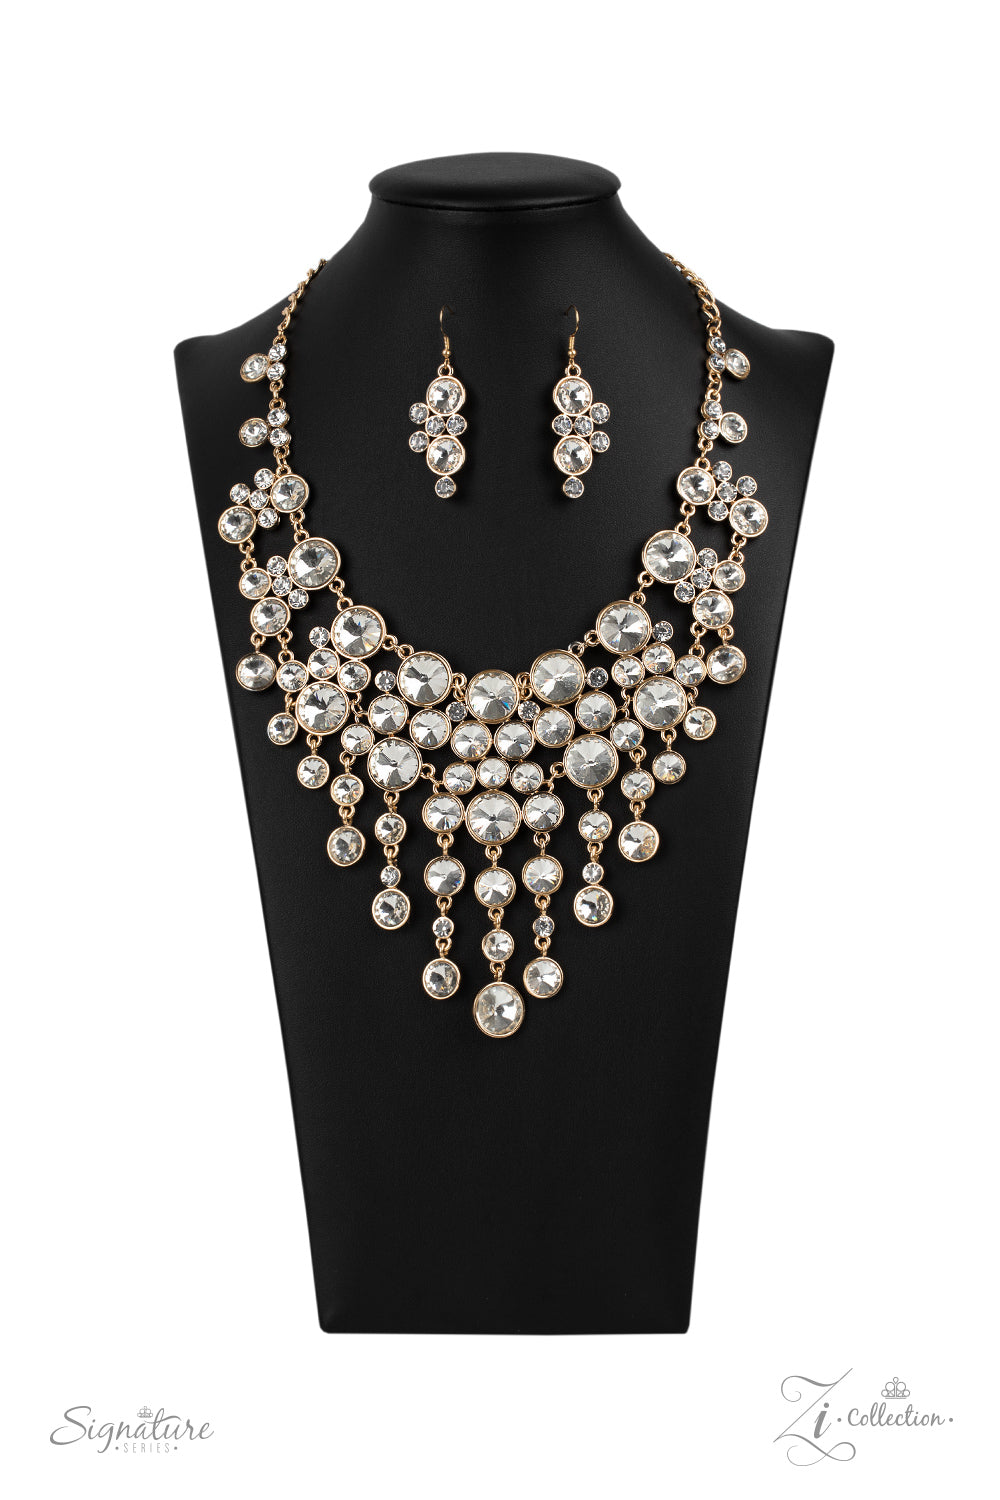 Paparazzi Jewelry & Accessories - The Rosa - Zi Collection. Bling By Titia Boutique